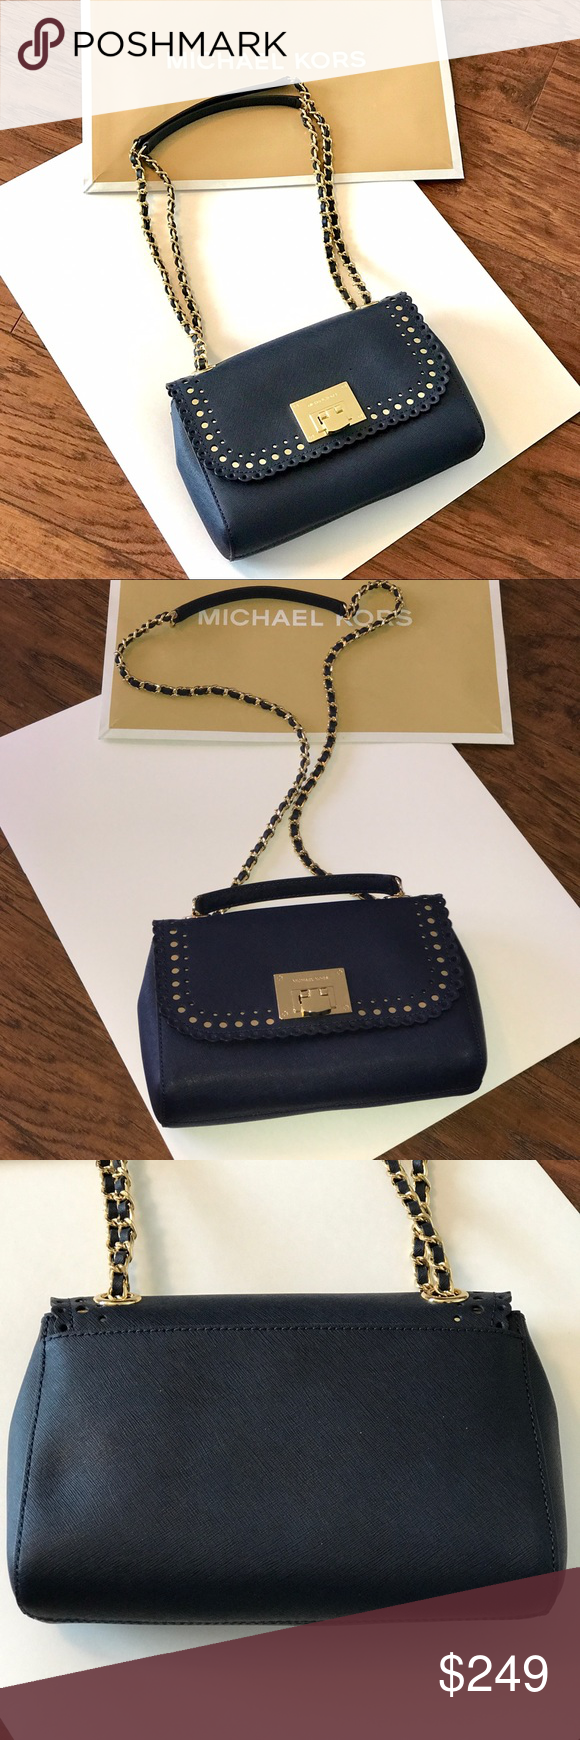 MICHAEL KORS Violet Vivian Shoulder Flap Navy Guaranteed Authentic! Michael  Kors Violet Vivian shoulder flap 4bb5afa45c109